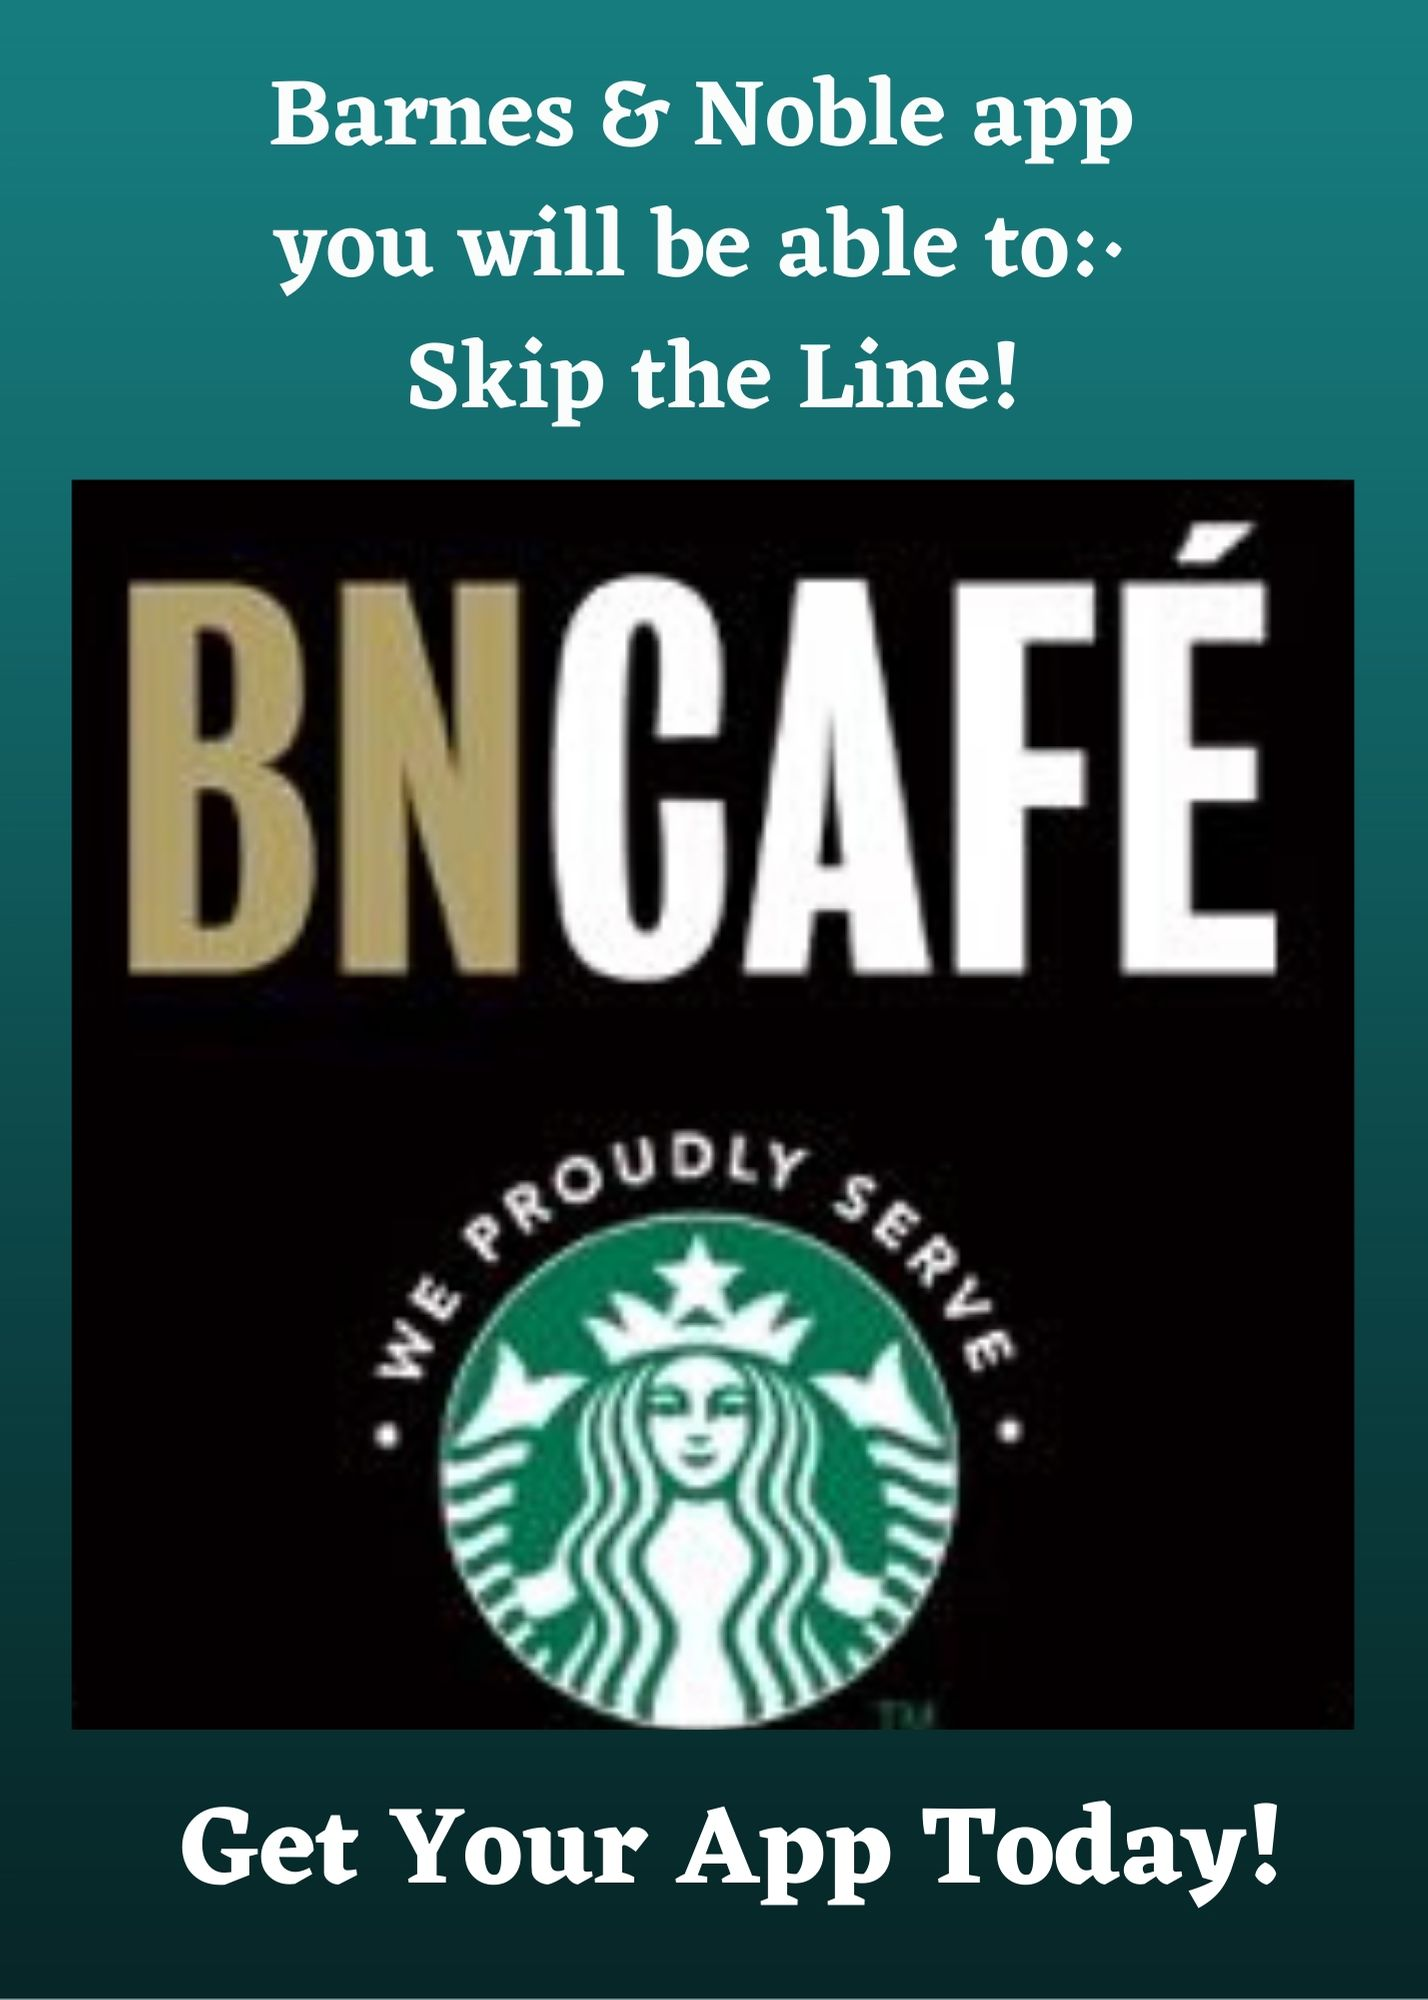 Barnes and Noble New Cafe App! from Barnes & Noble Booksellers